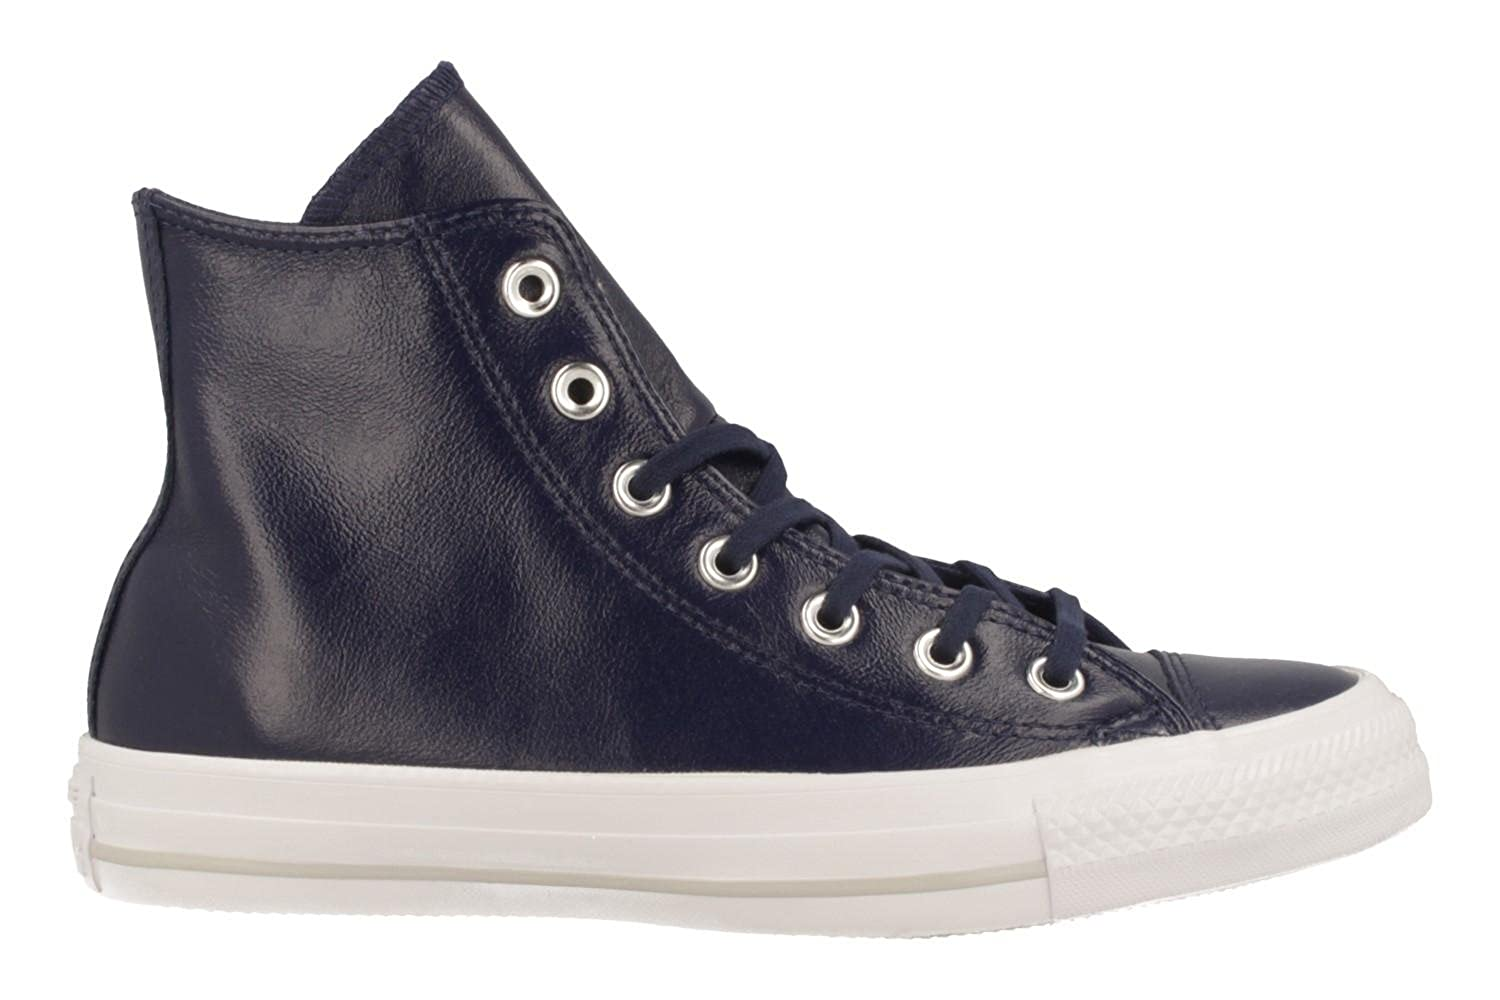 Converse Chuck Taylor All Star Skinn High Top ESAGx